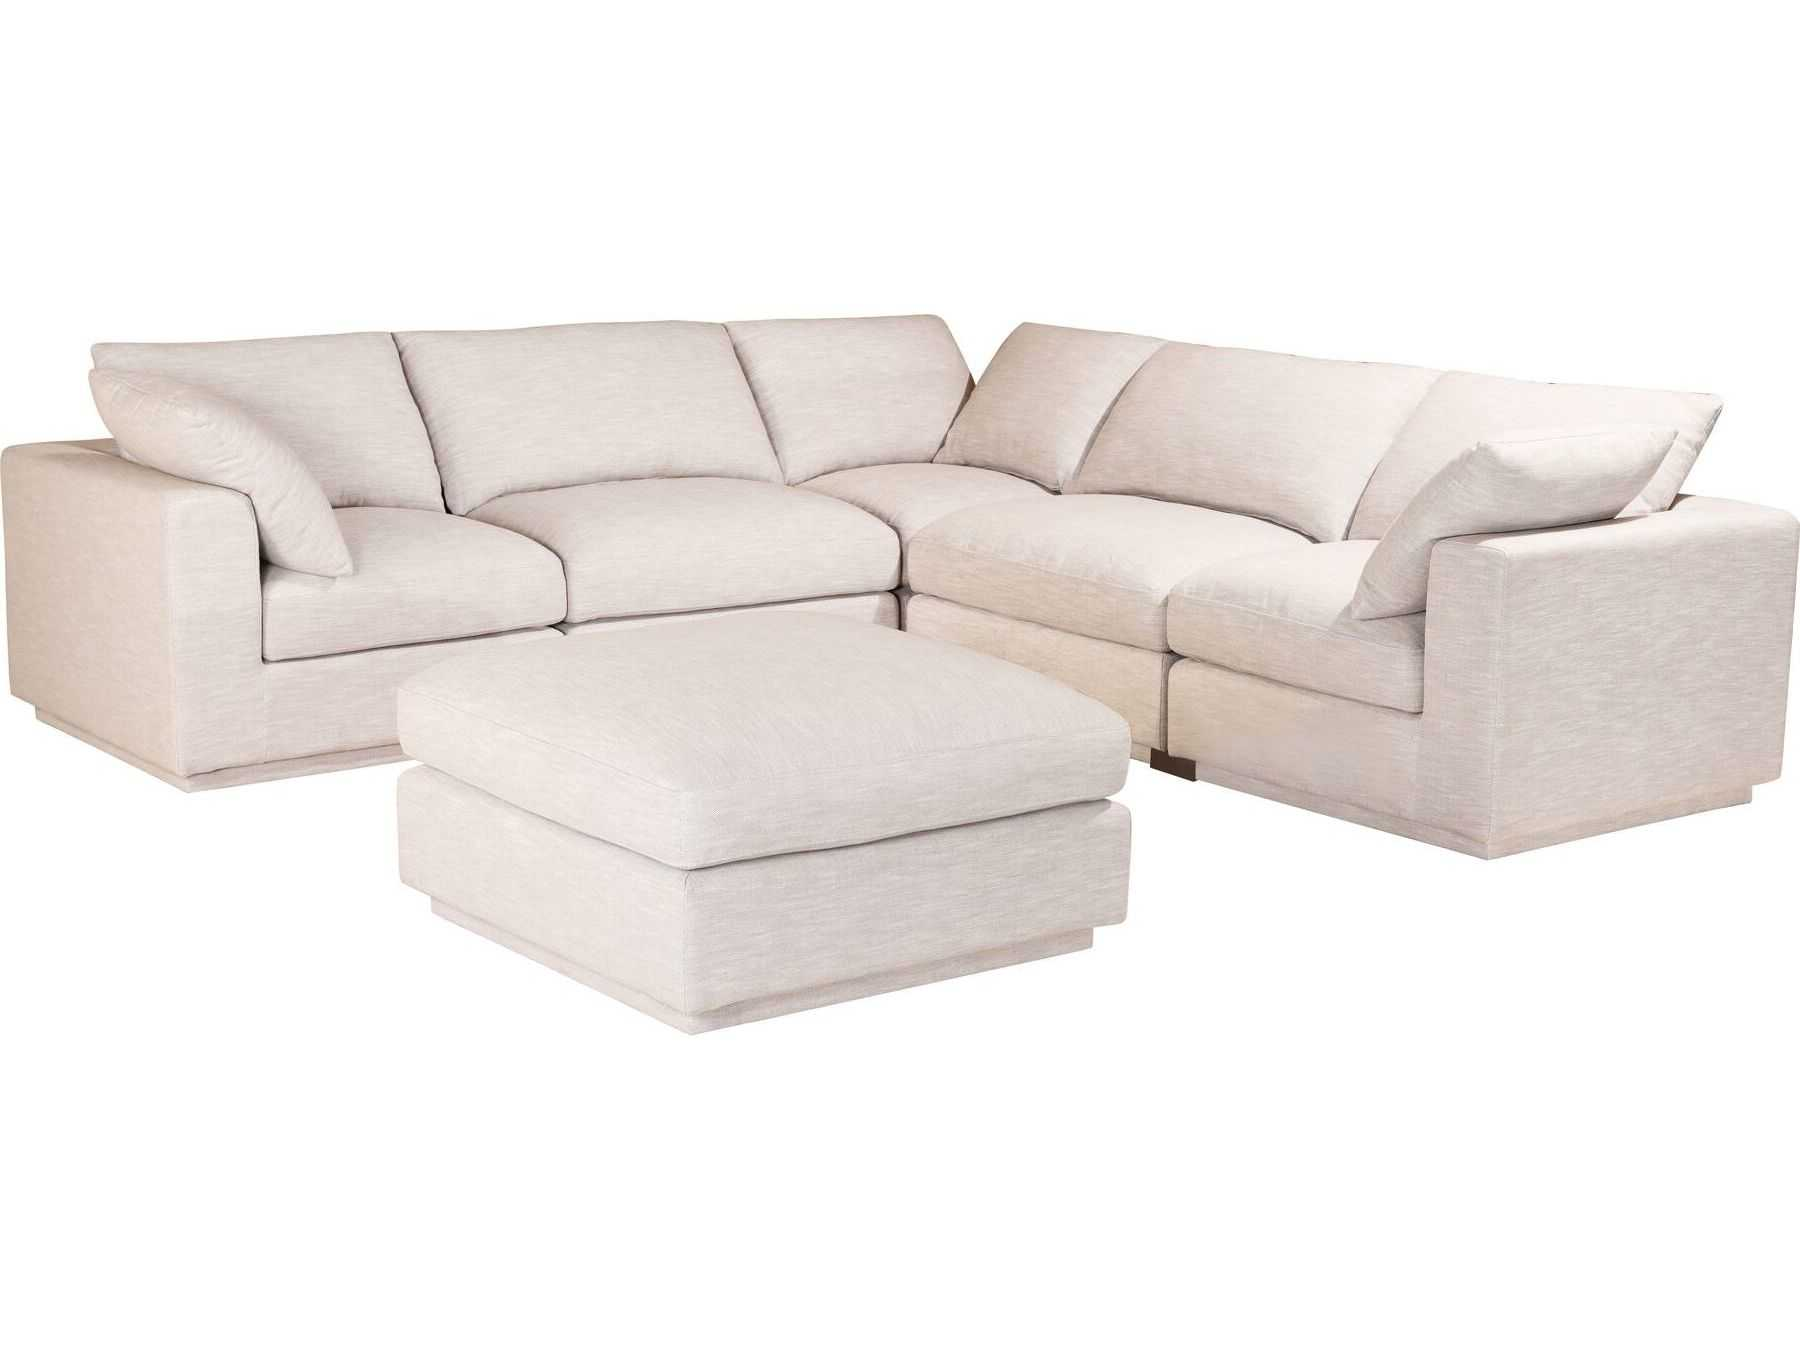 Groovy Moes Home Collection Justin Taupe Five Piece Sectional Sofa With Ottoman Onthecornerstone Fun Painted Chair Ideas Images Onthecornerstoneorg